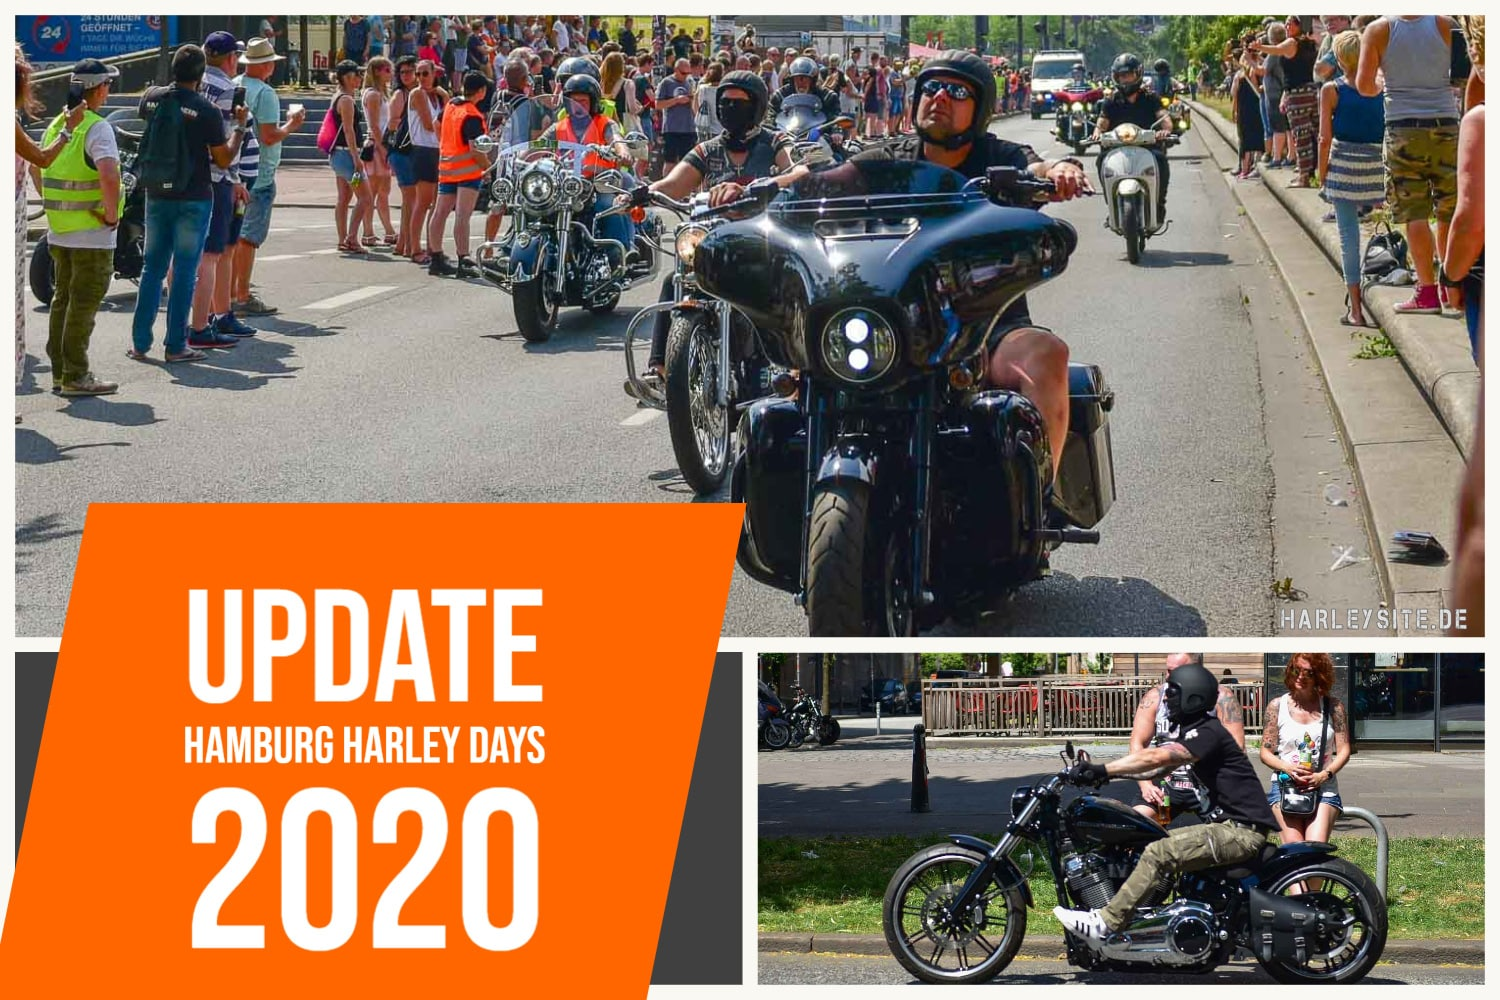 CORONA UPDATE - HAMBURG HARLEY DAYS